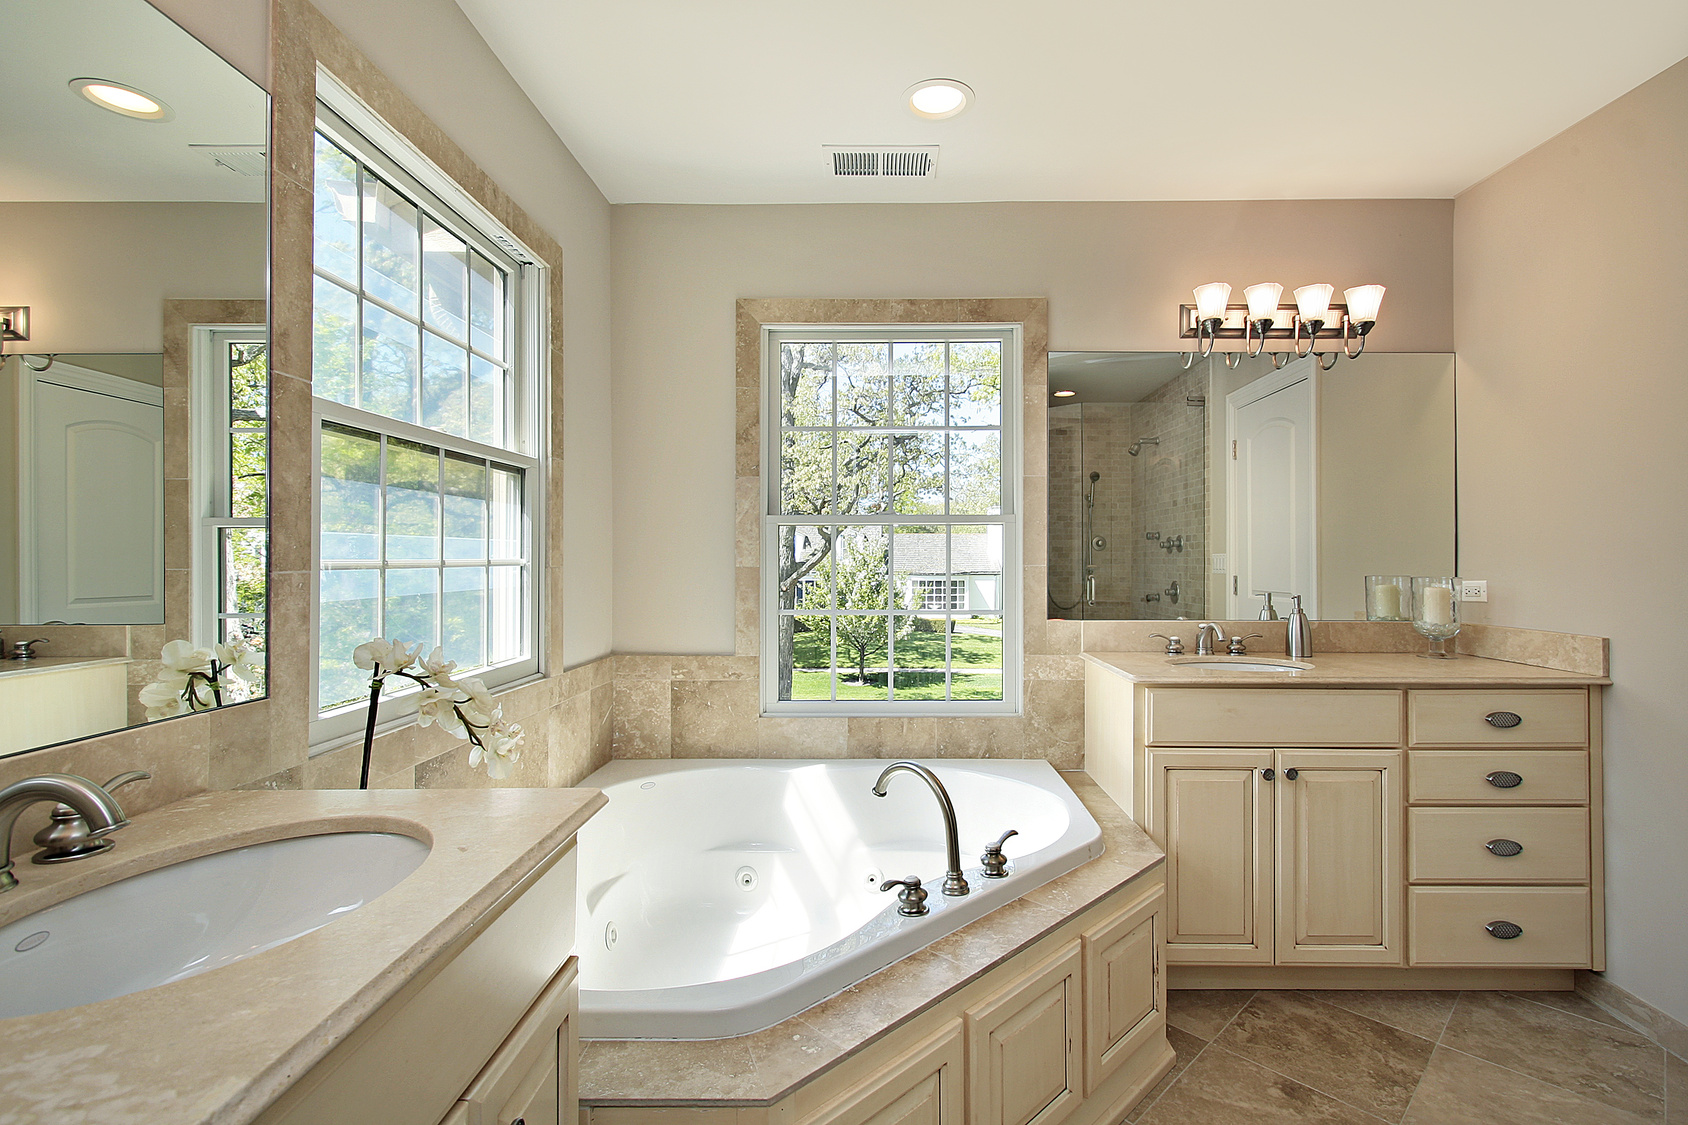 Bathroom remodeling renovations bathroom remodel for Remodeling companies